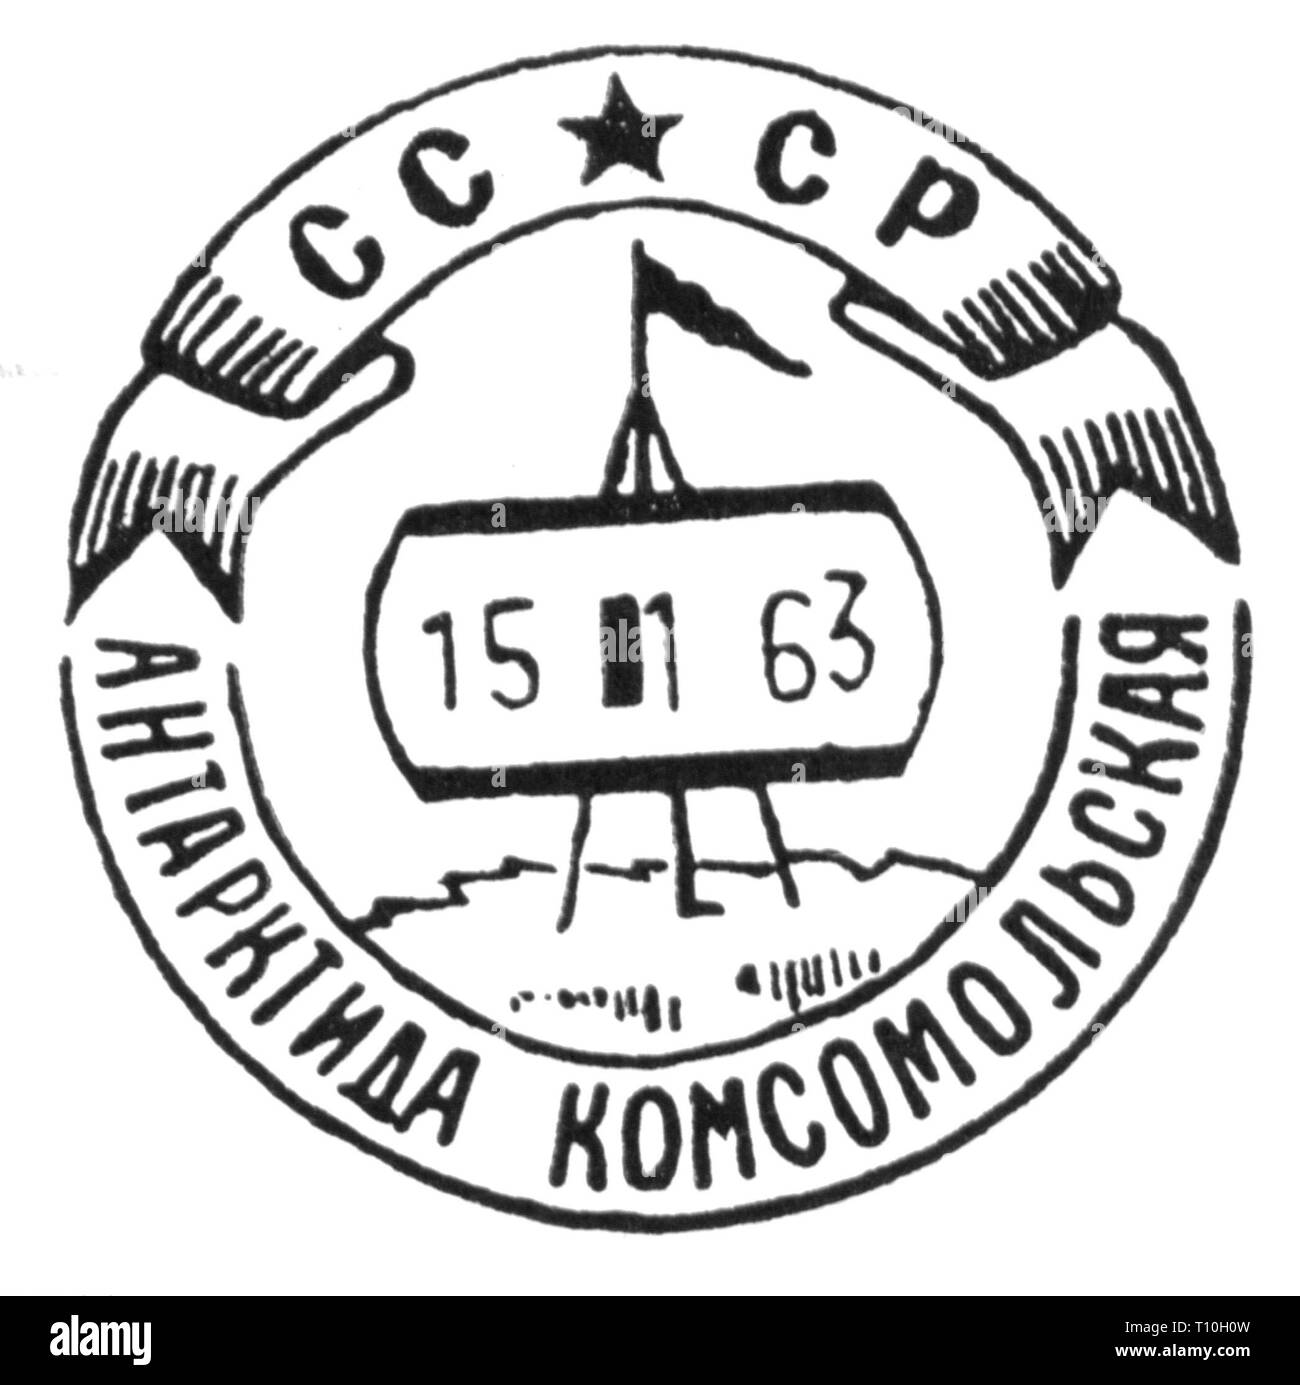 mail, postmarks, Russia, special postmark of the Soviet Antarctic station Komsomolskaya, 15.1.1963, Artist's Copyright has not to be cleared - Stock Image